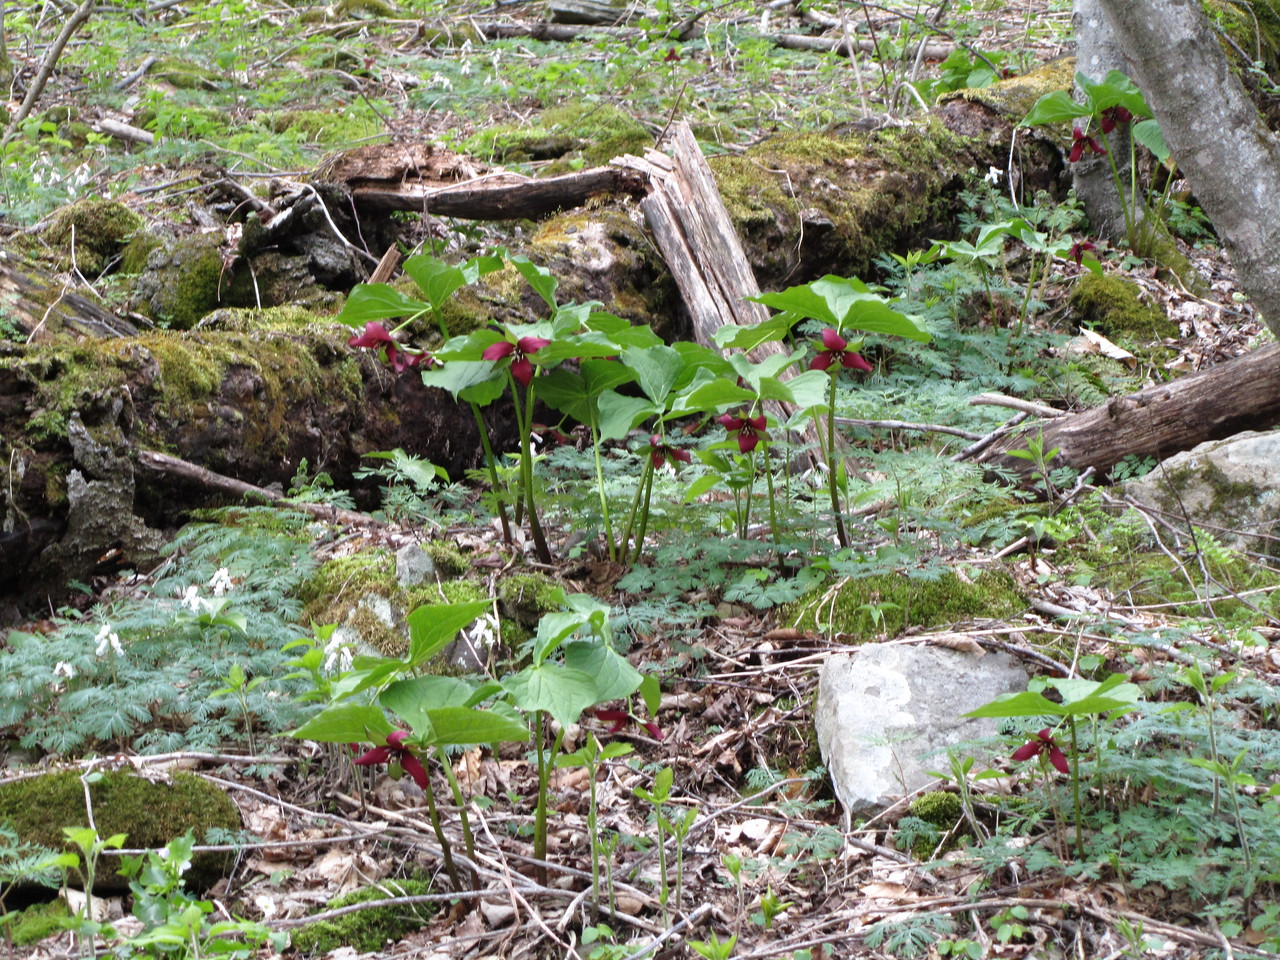 The purple trillium or stink flowers were everywhere.